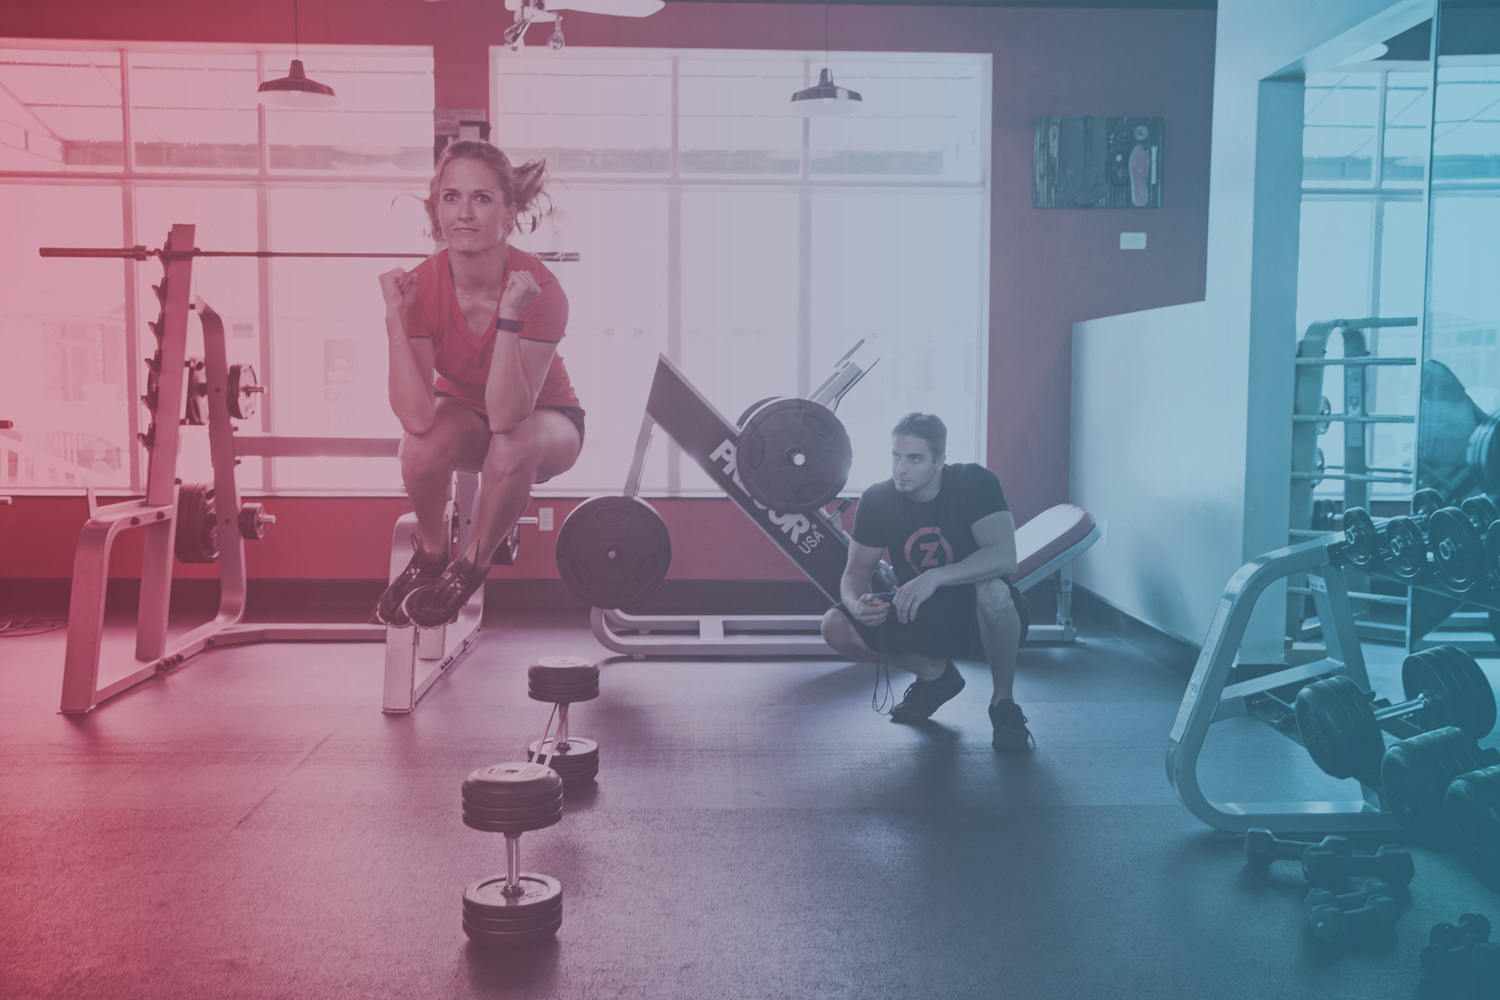 Trainers zen fitness personal training personal trainers gainesville florida 1betcityfo Image collections